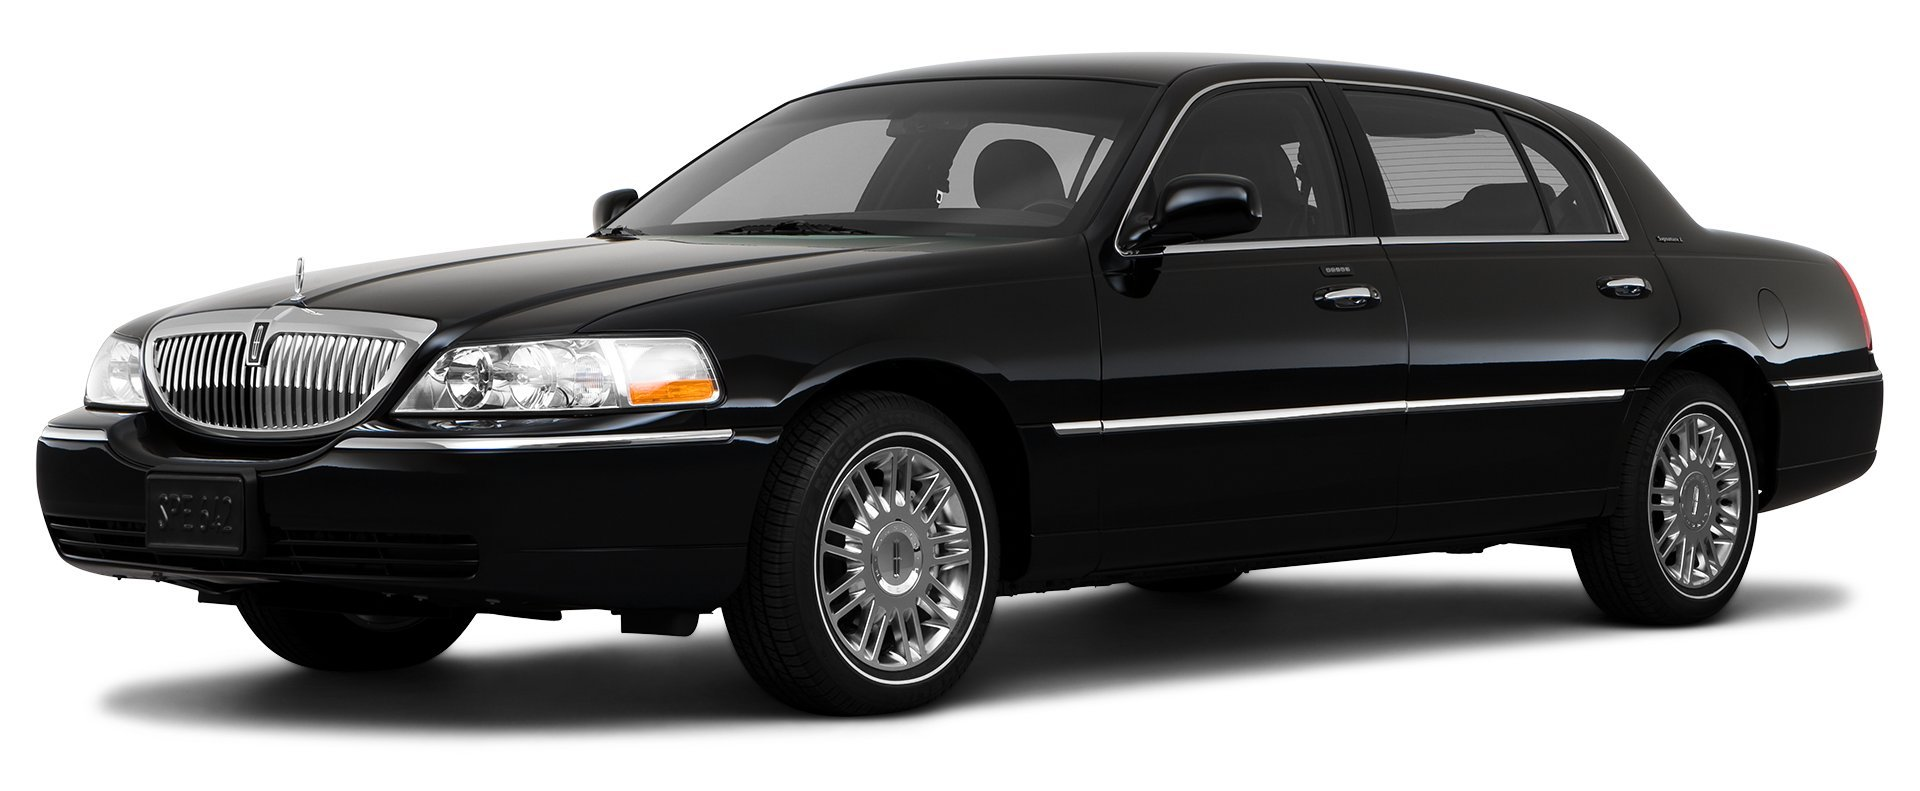 2010 lincoln town car reviews images and. Black Bedroom Furniture Sets. Home Design Ideas